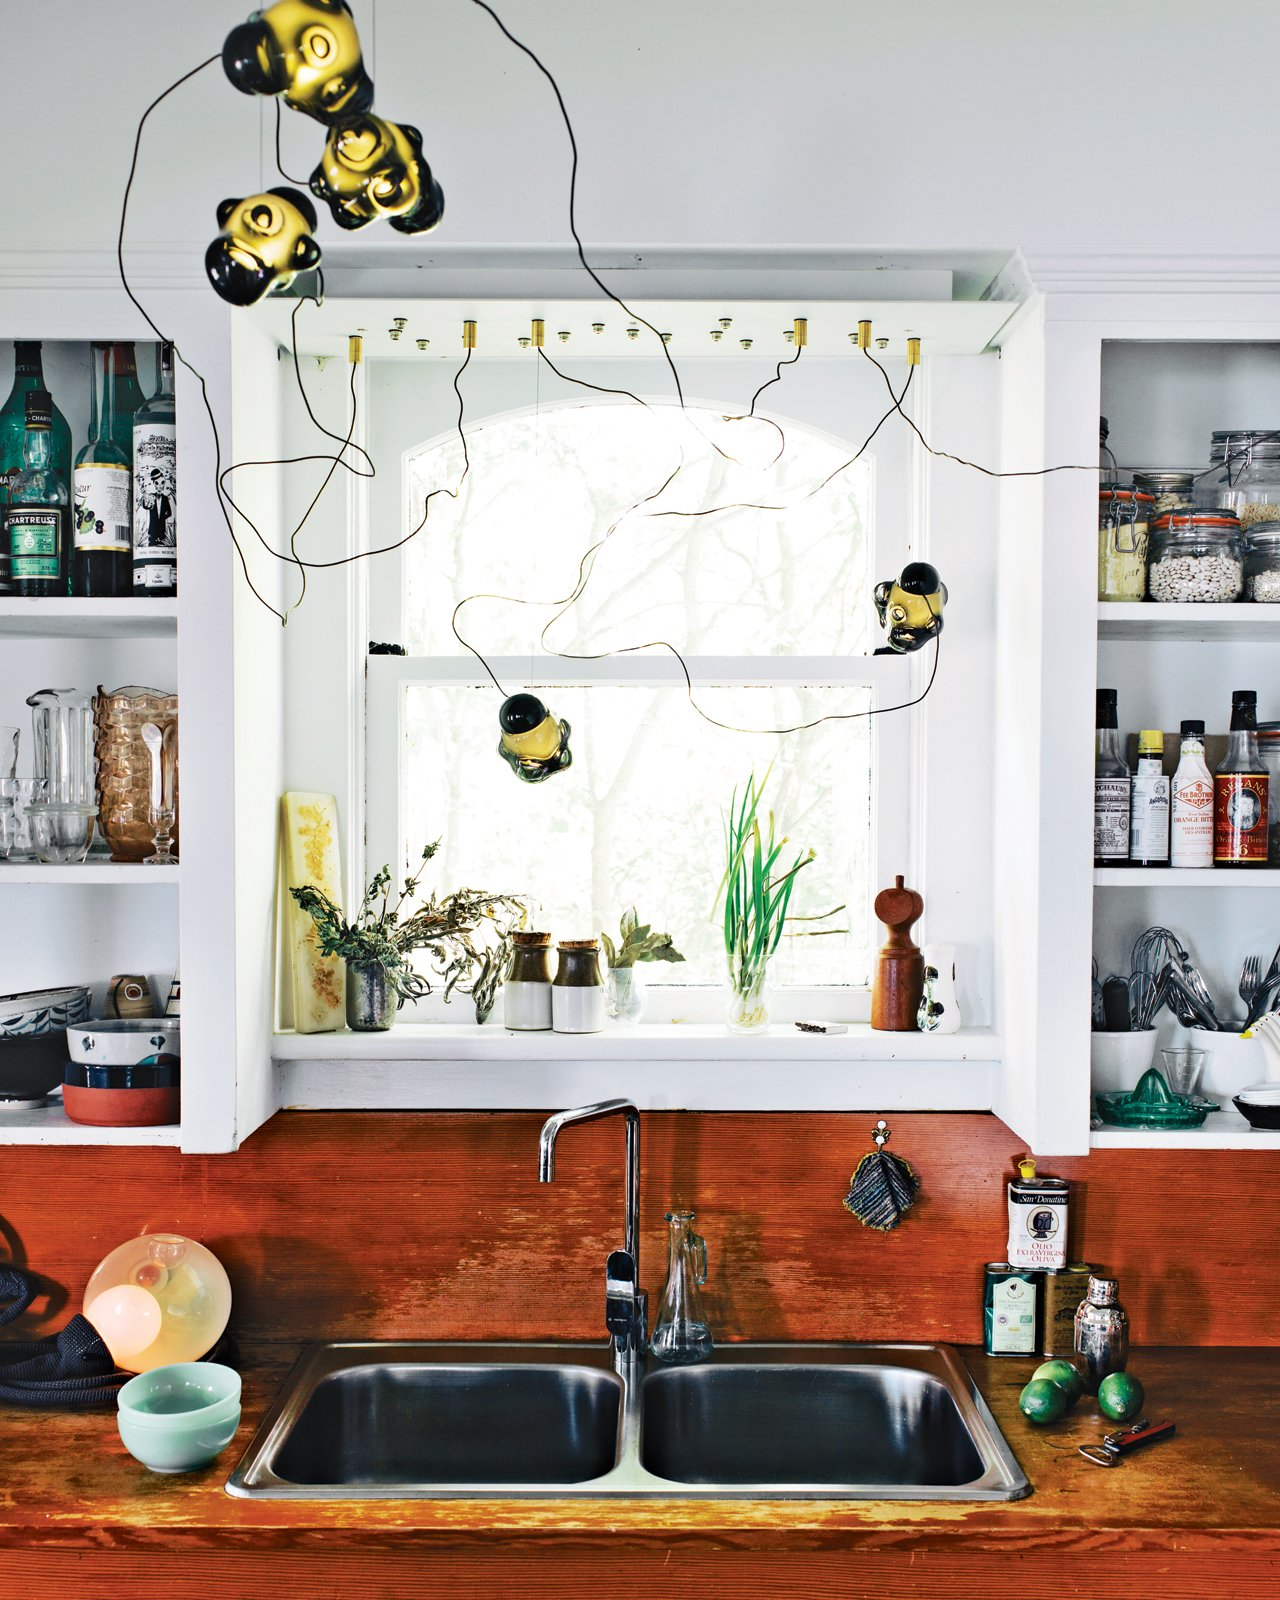 Above the sink in the kitchen, you can see one of Bocci's first 57 chandeliers.  In the Home from Love Animals? This House is for You